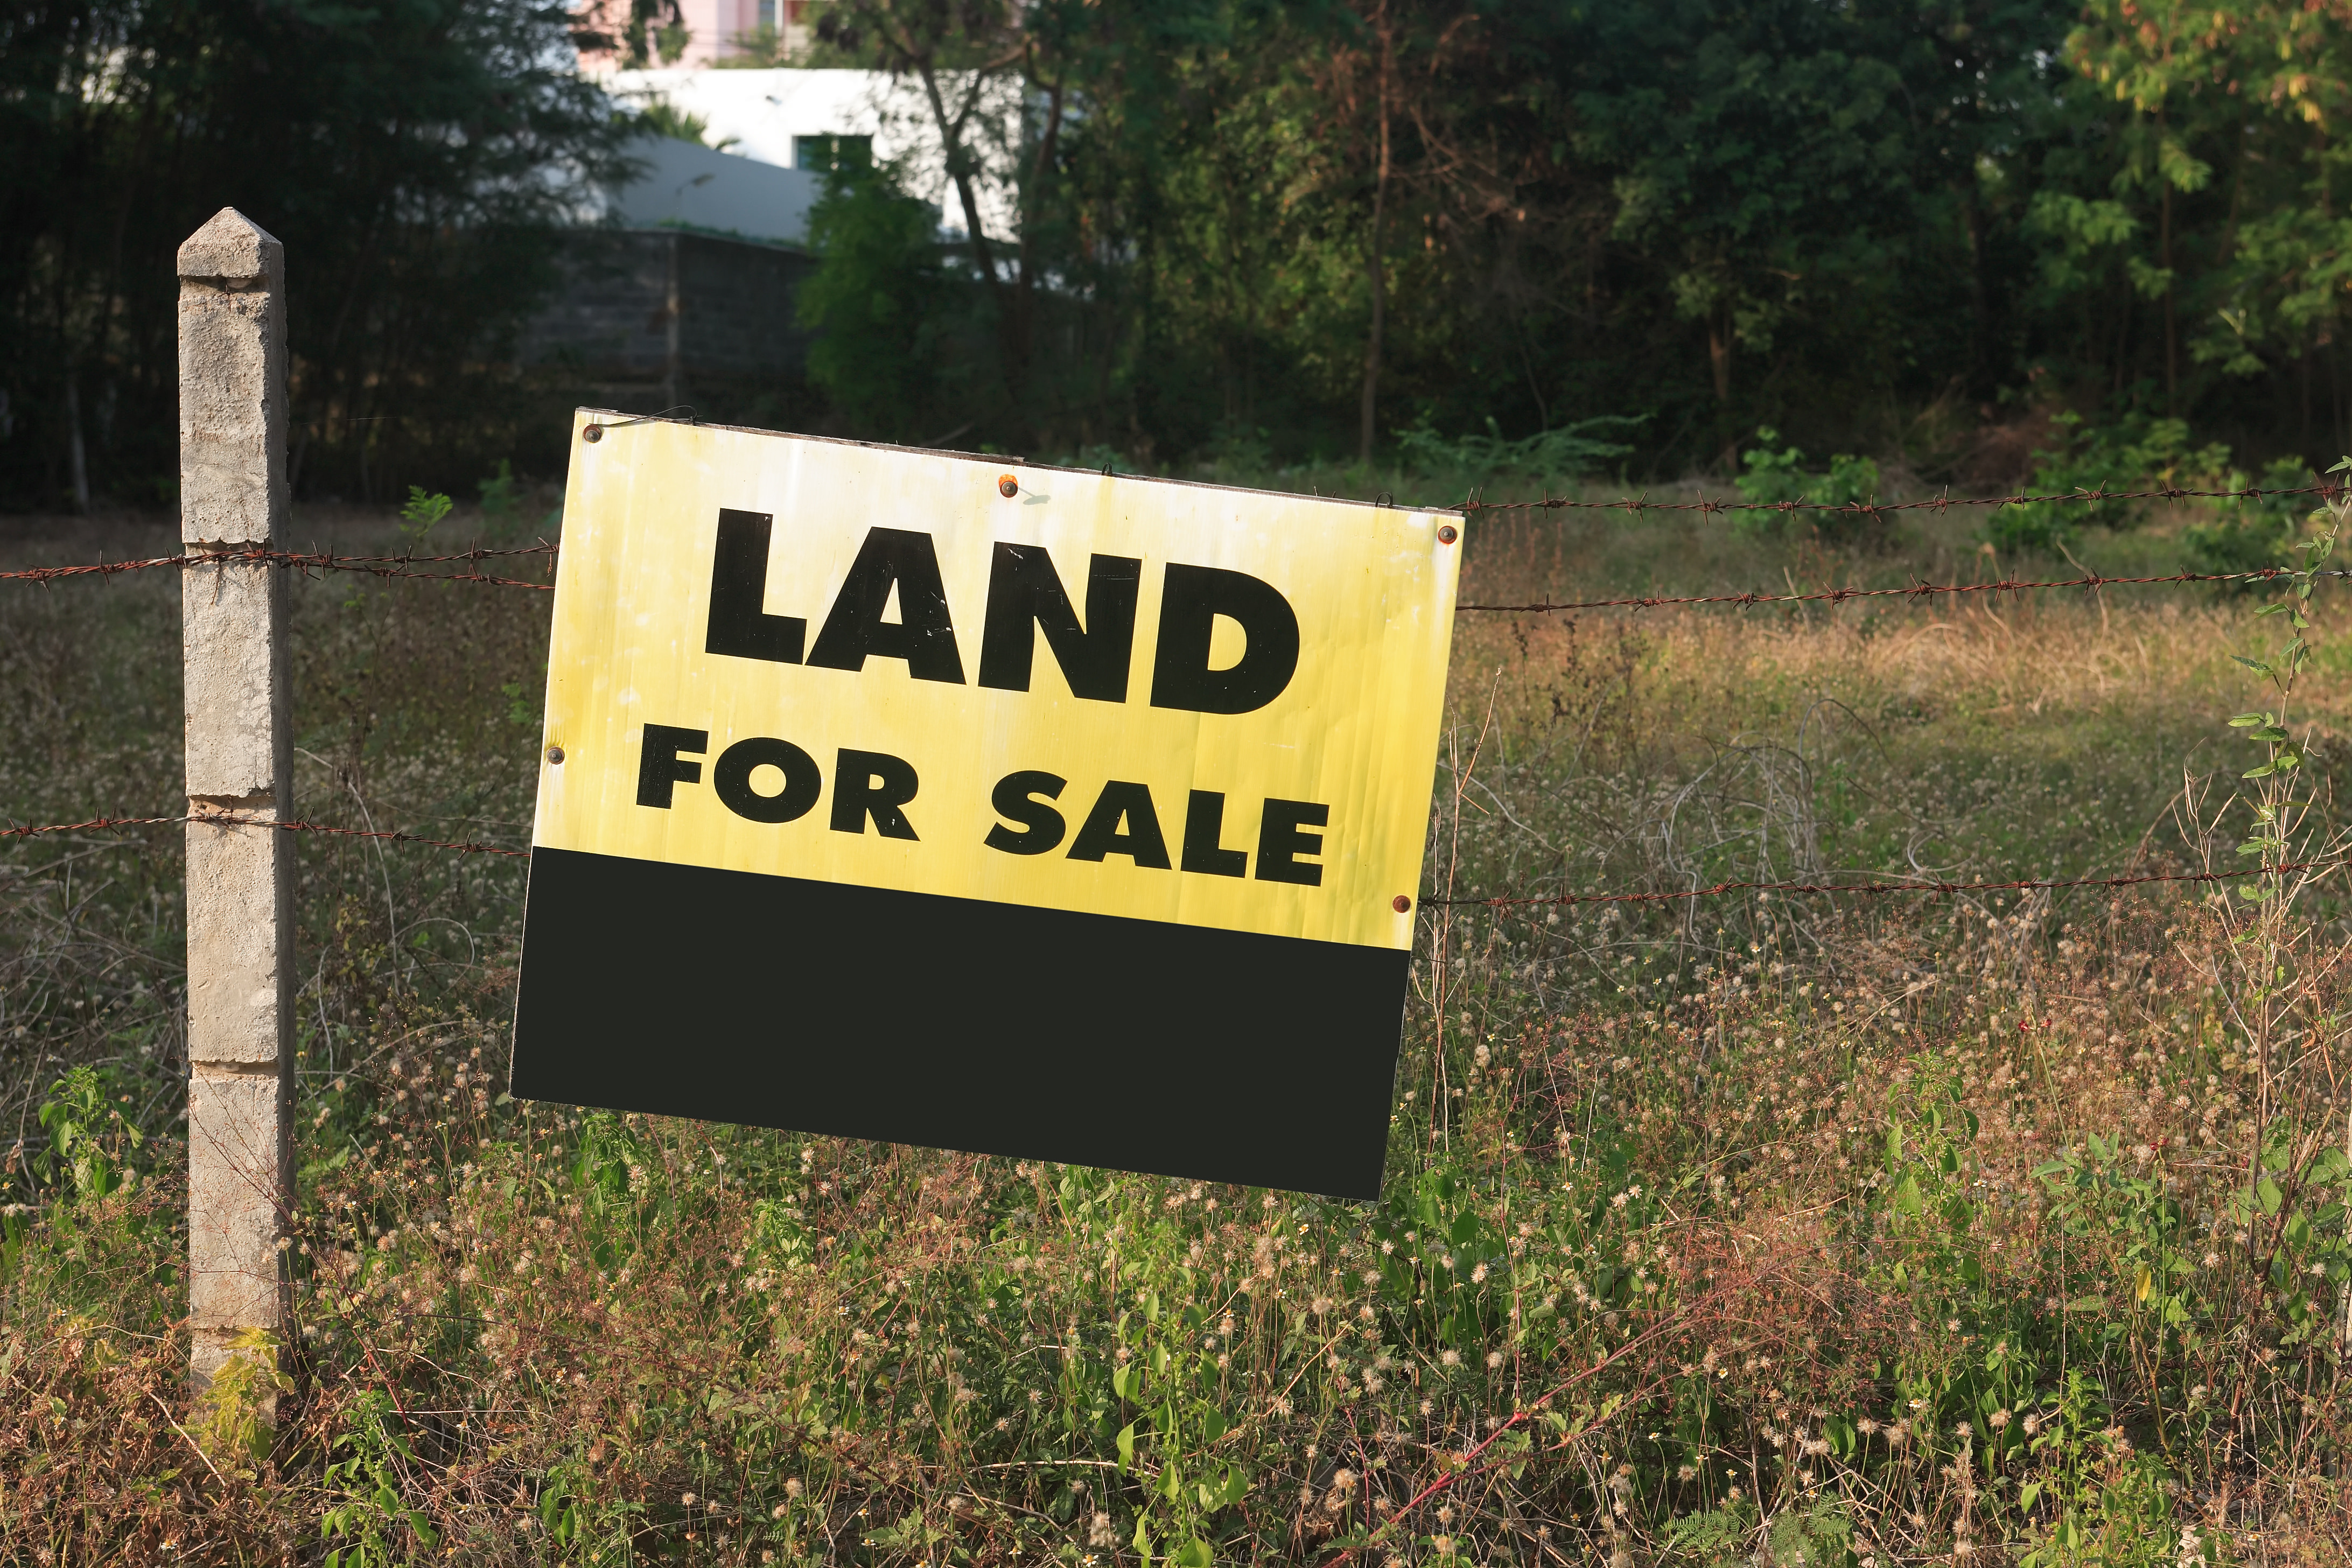 City Governments Are Selling off Land Lot by Lot